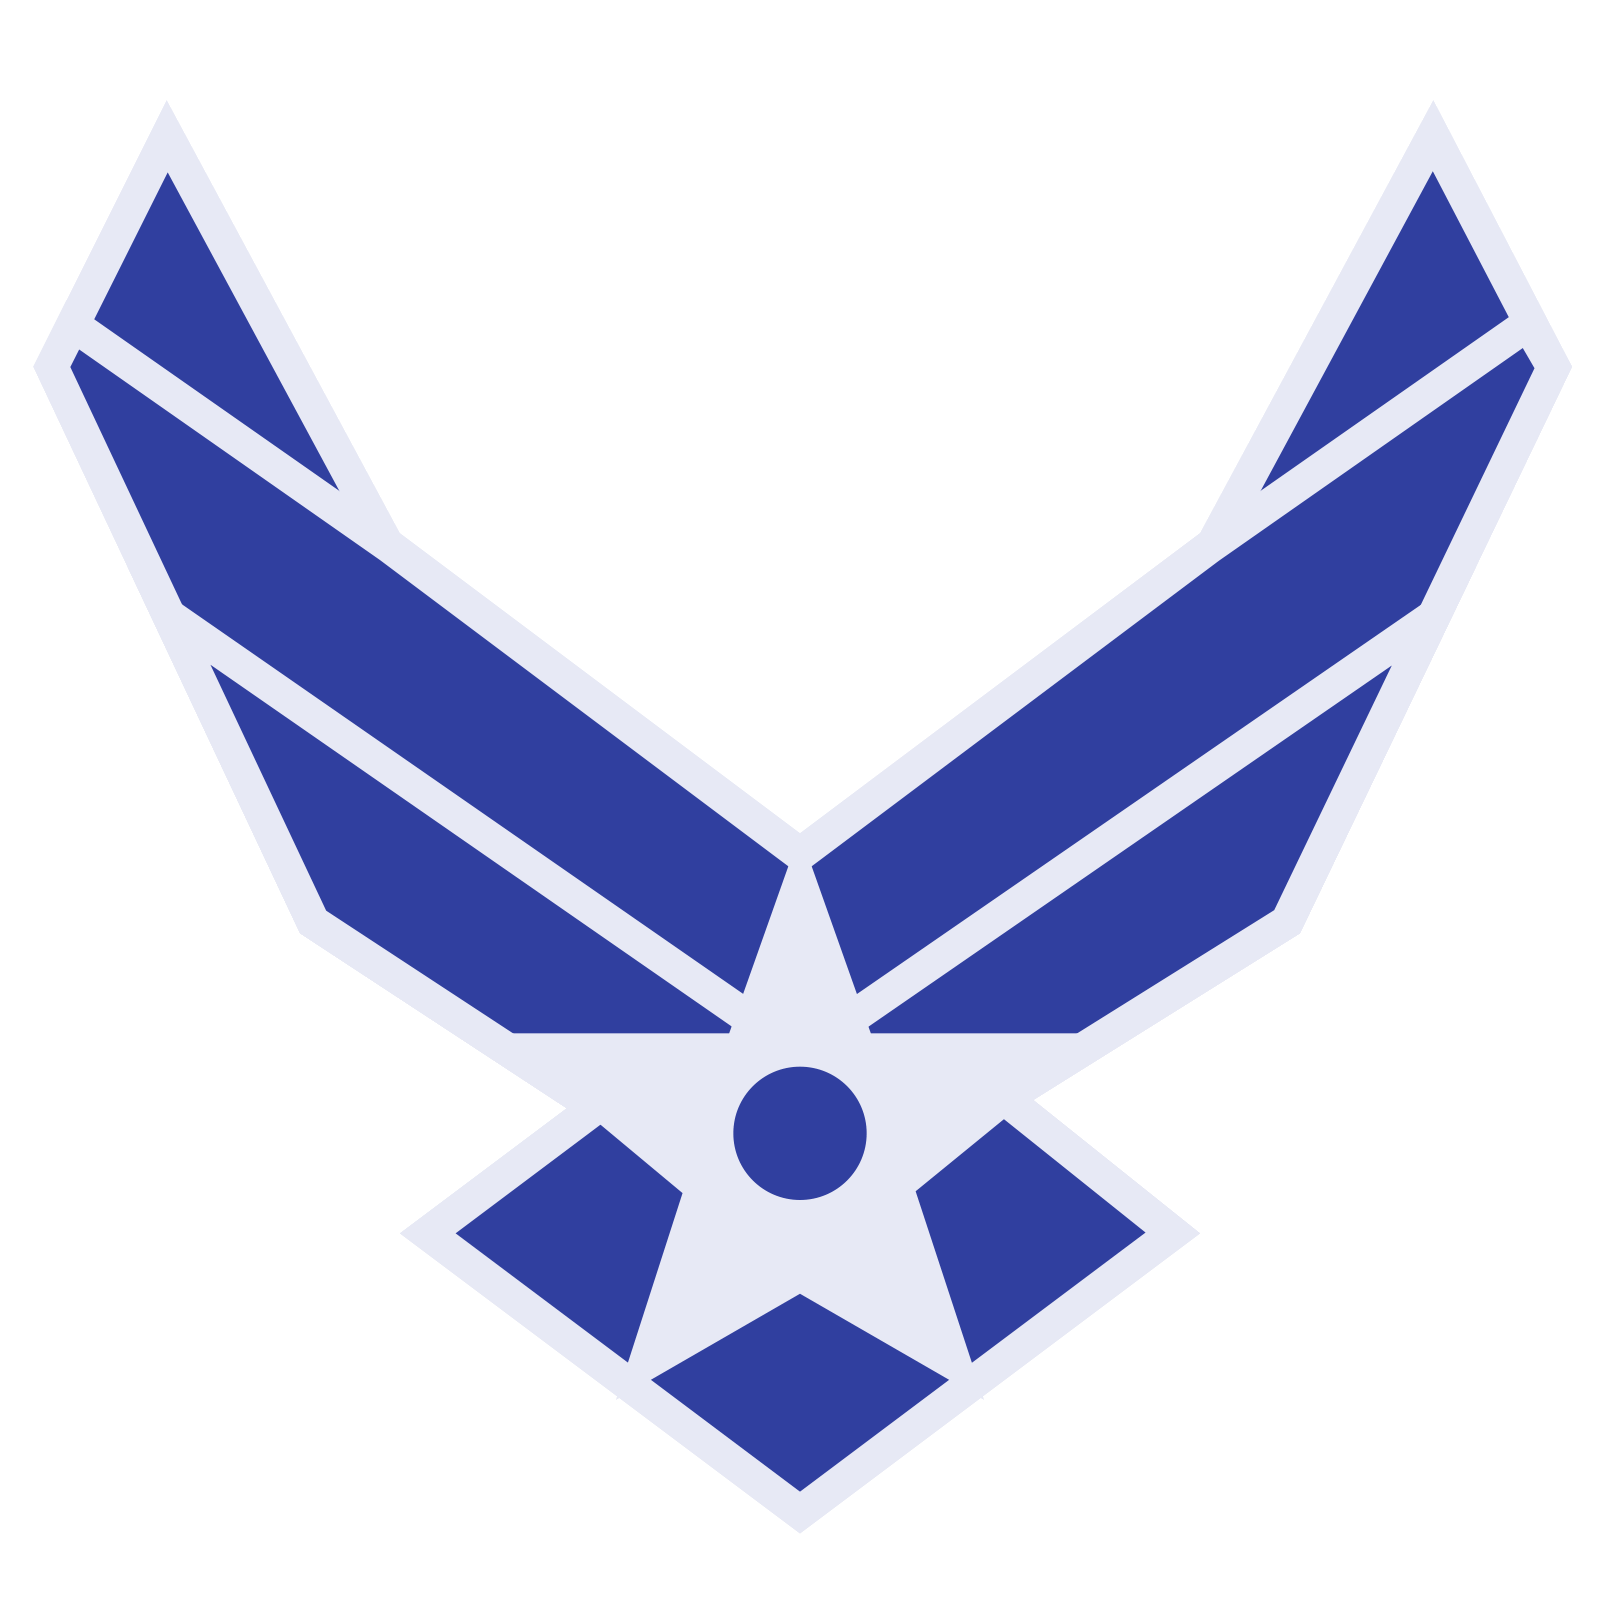 Png air force. Us icon free download